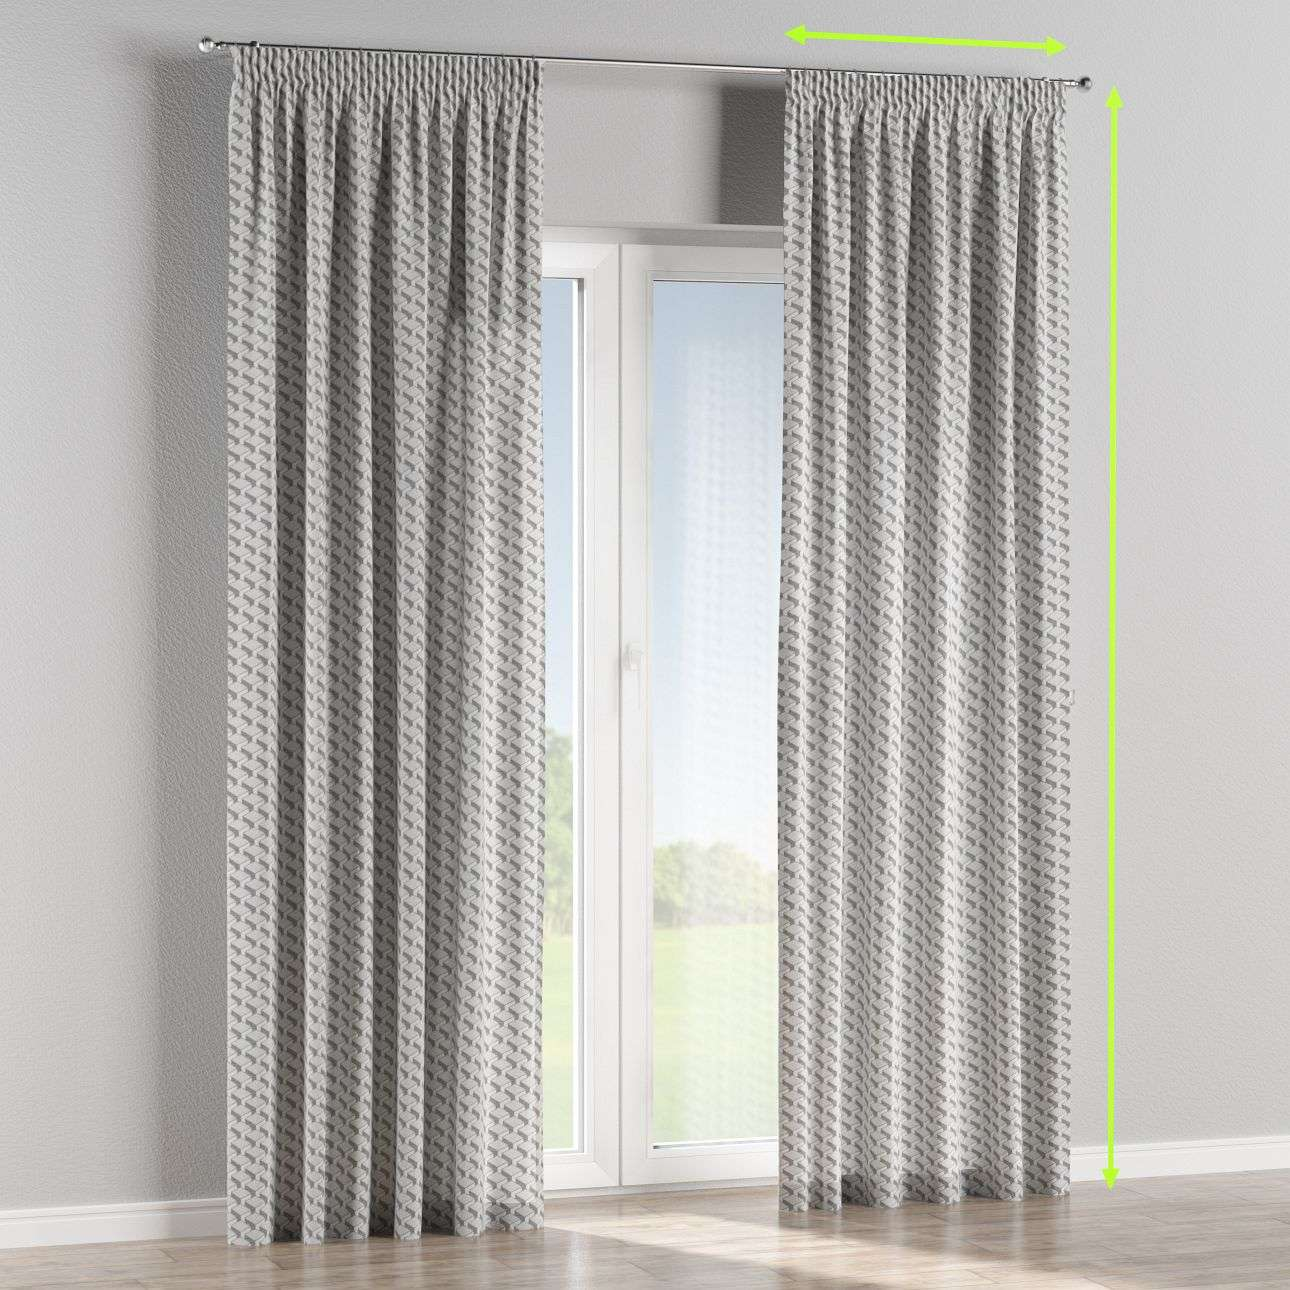 Pencil pleat lined curtains in collection Rustica, fabric: 138-18